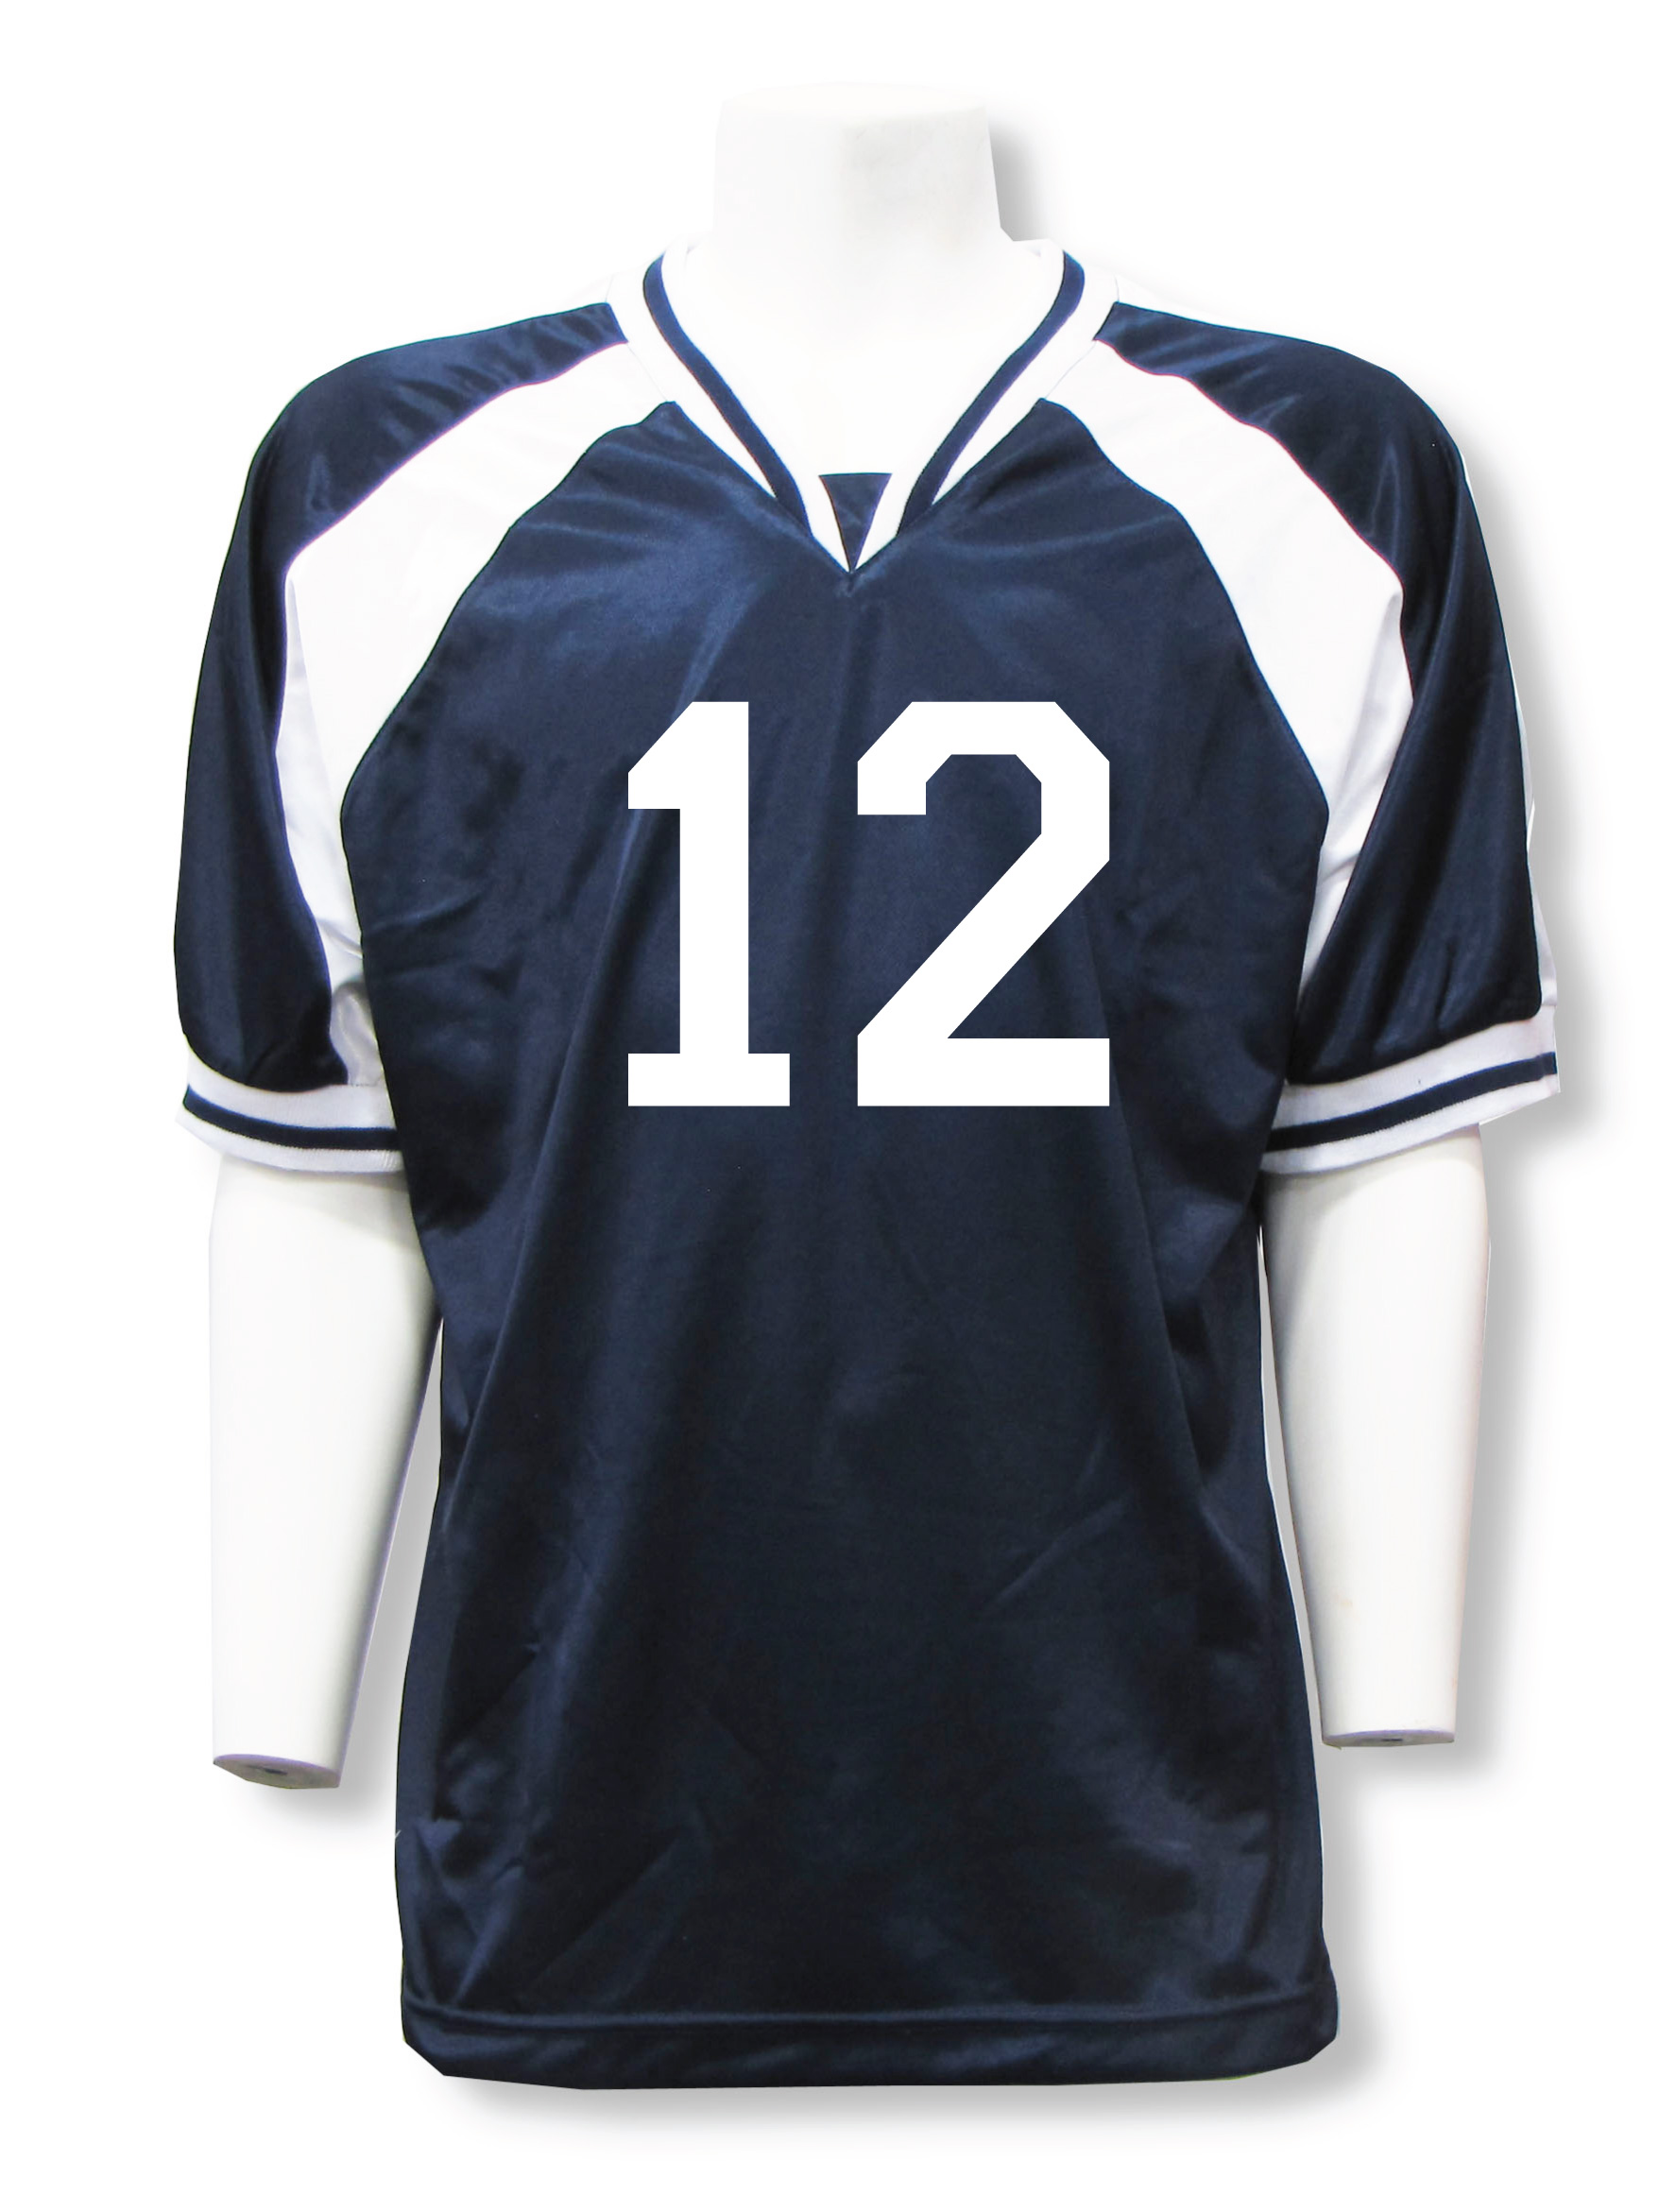 SpitfireGameDay_navy-white_front